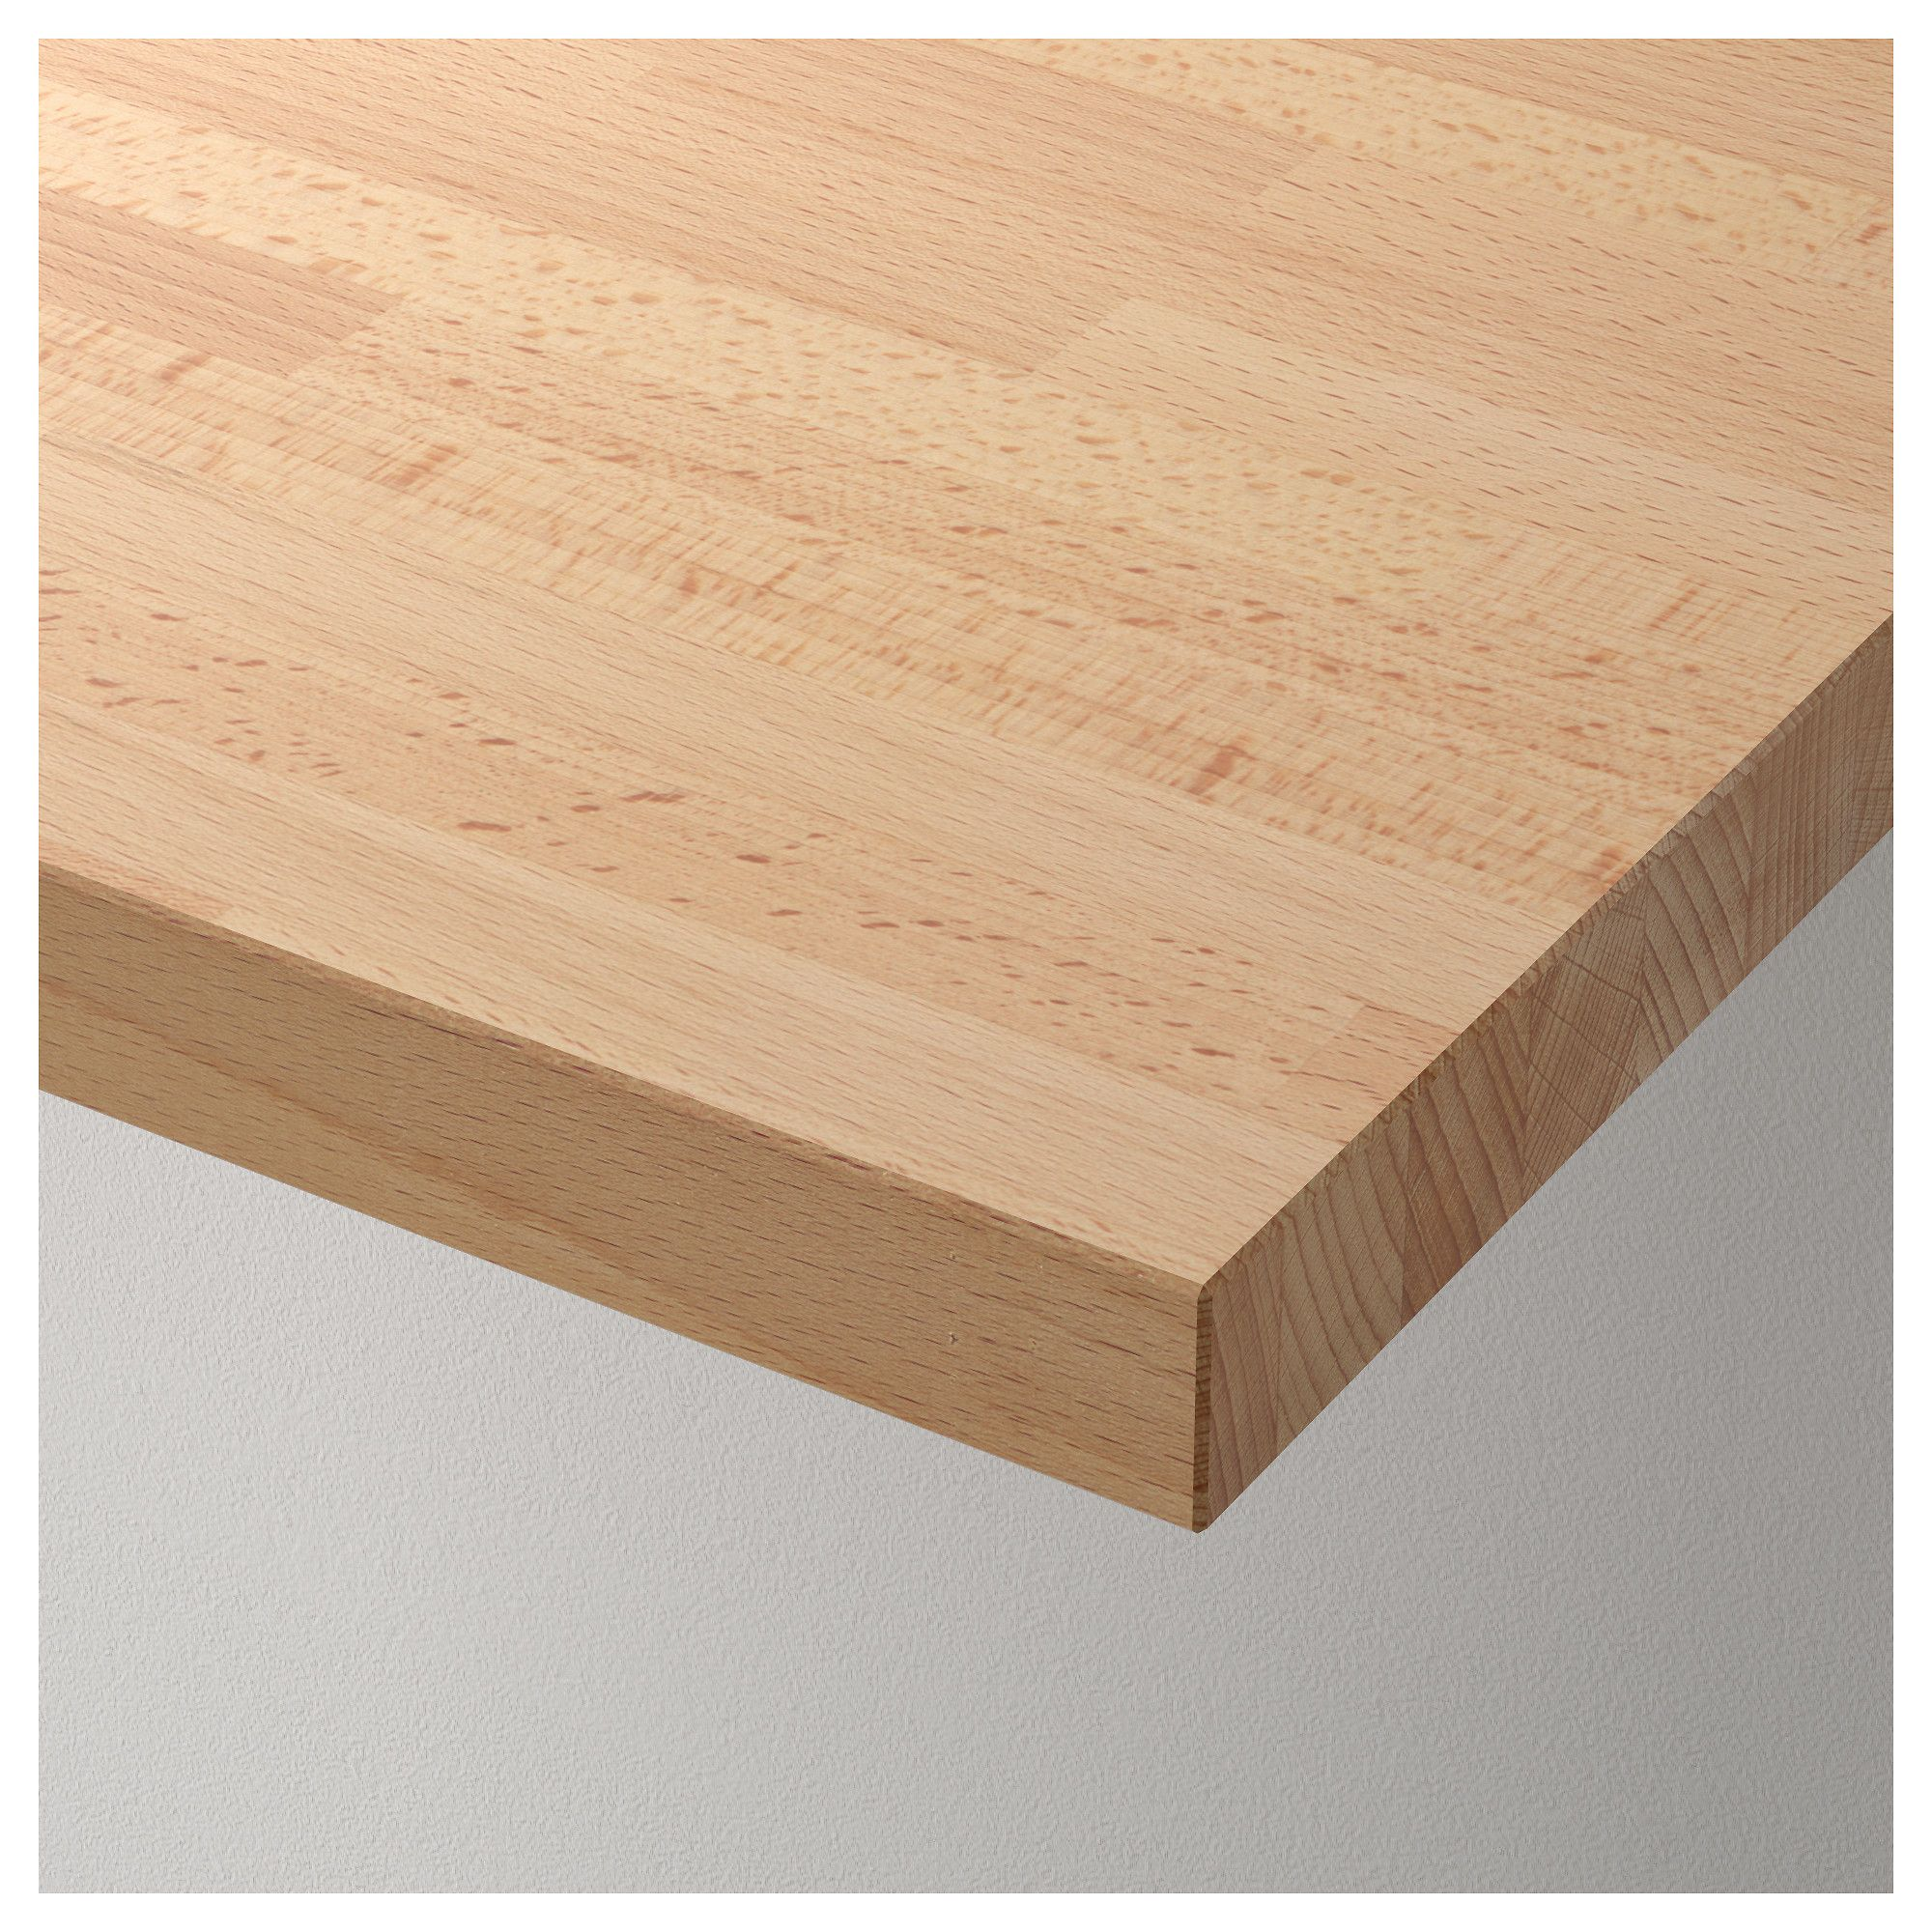 Ikea Gerton Table Top Solid Wood Is A Durable Natural Material